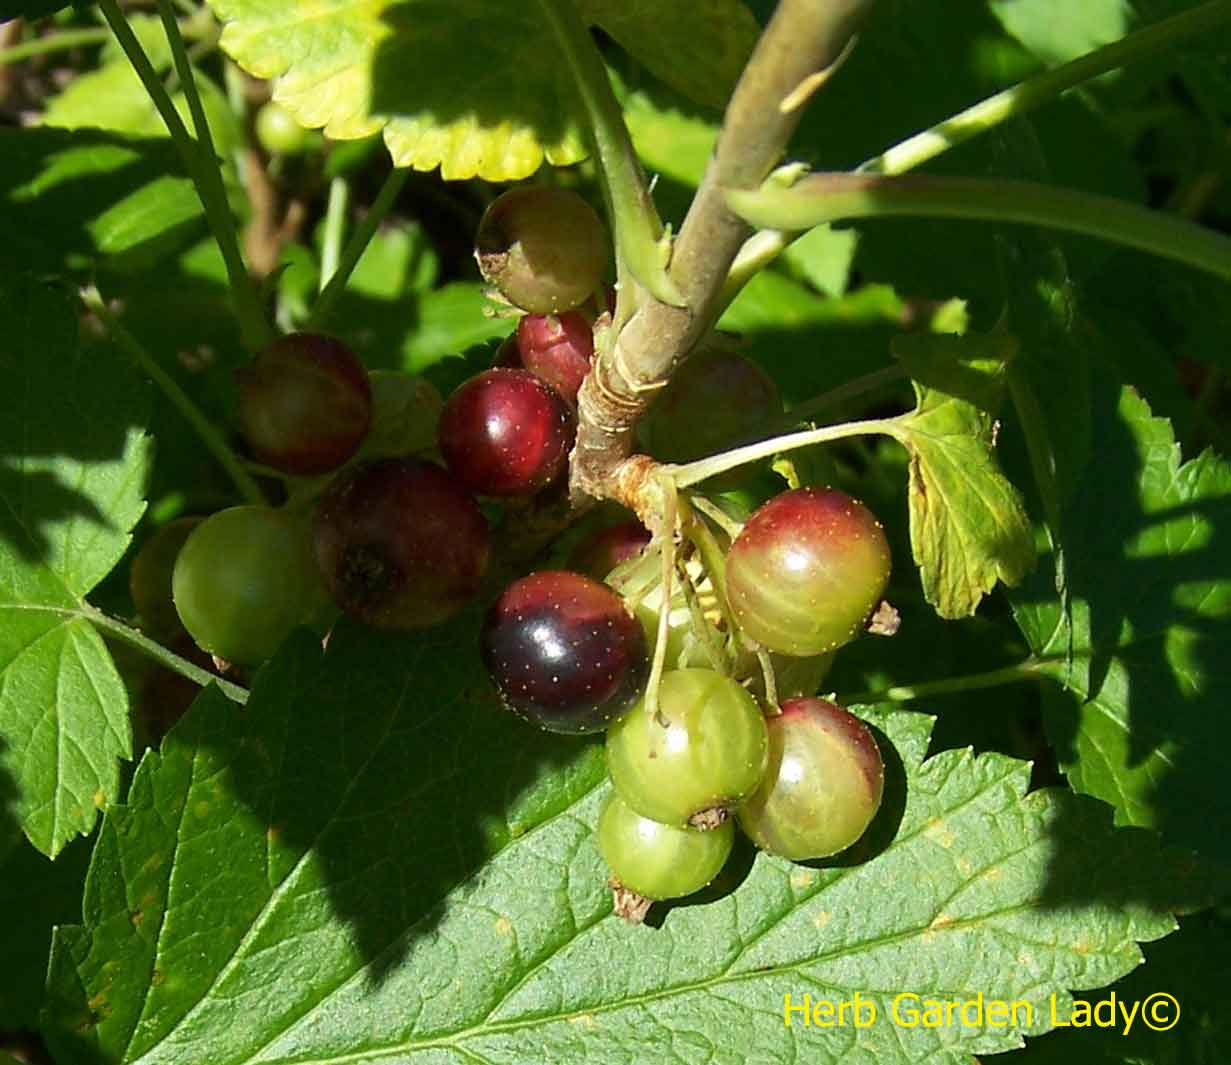 Black currants just starting to ripen